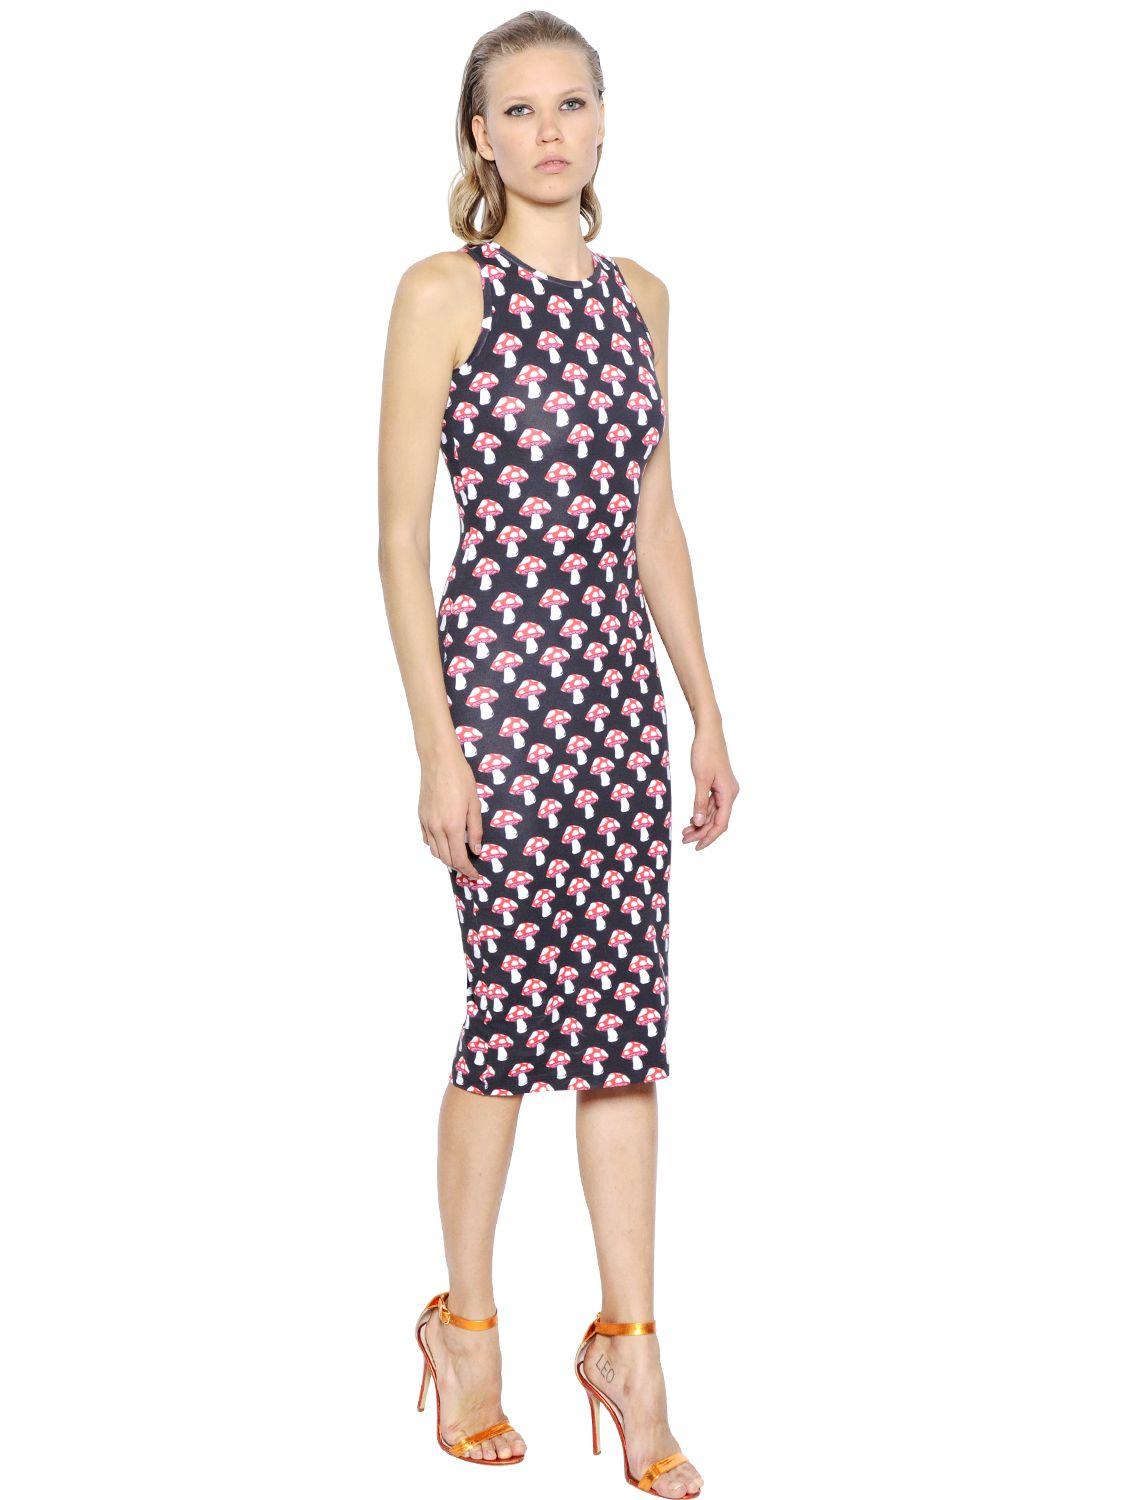 House of holland strappy maxi dress